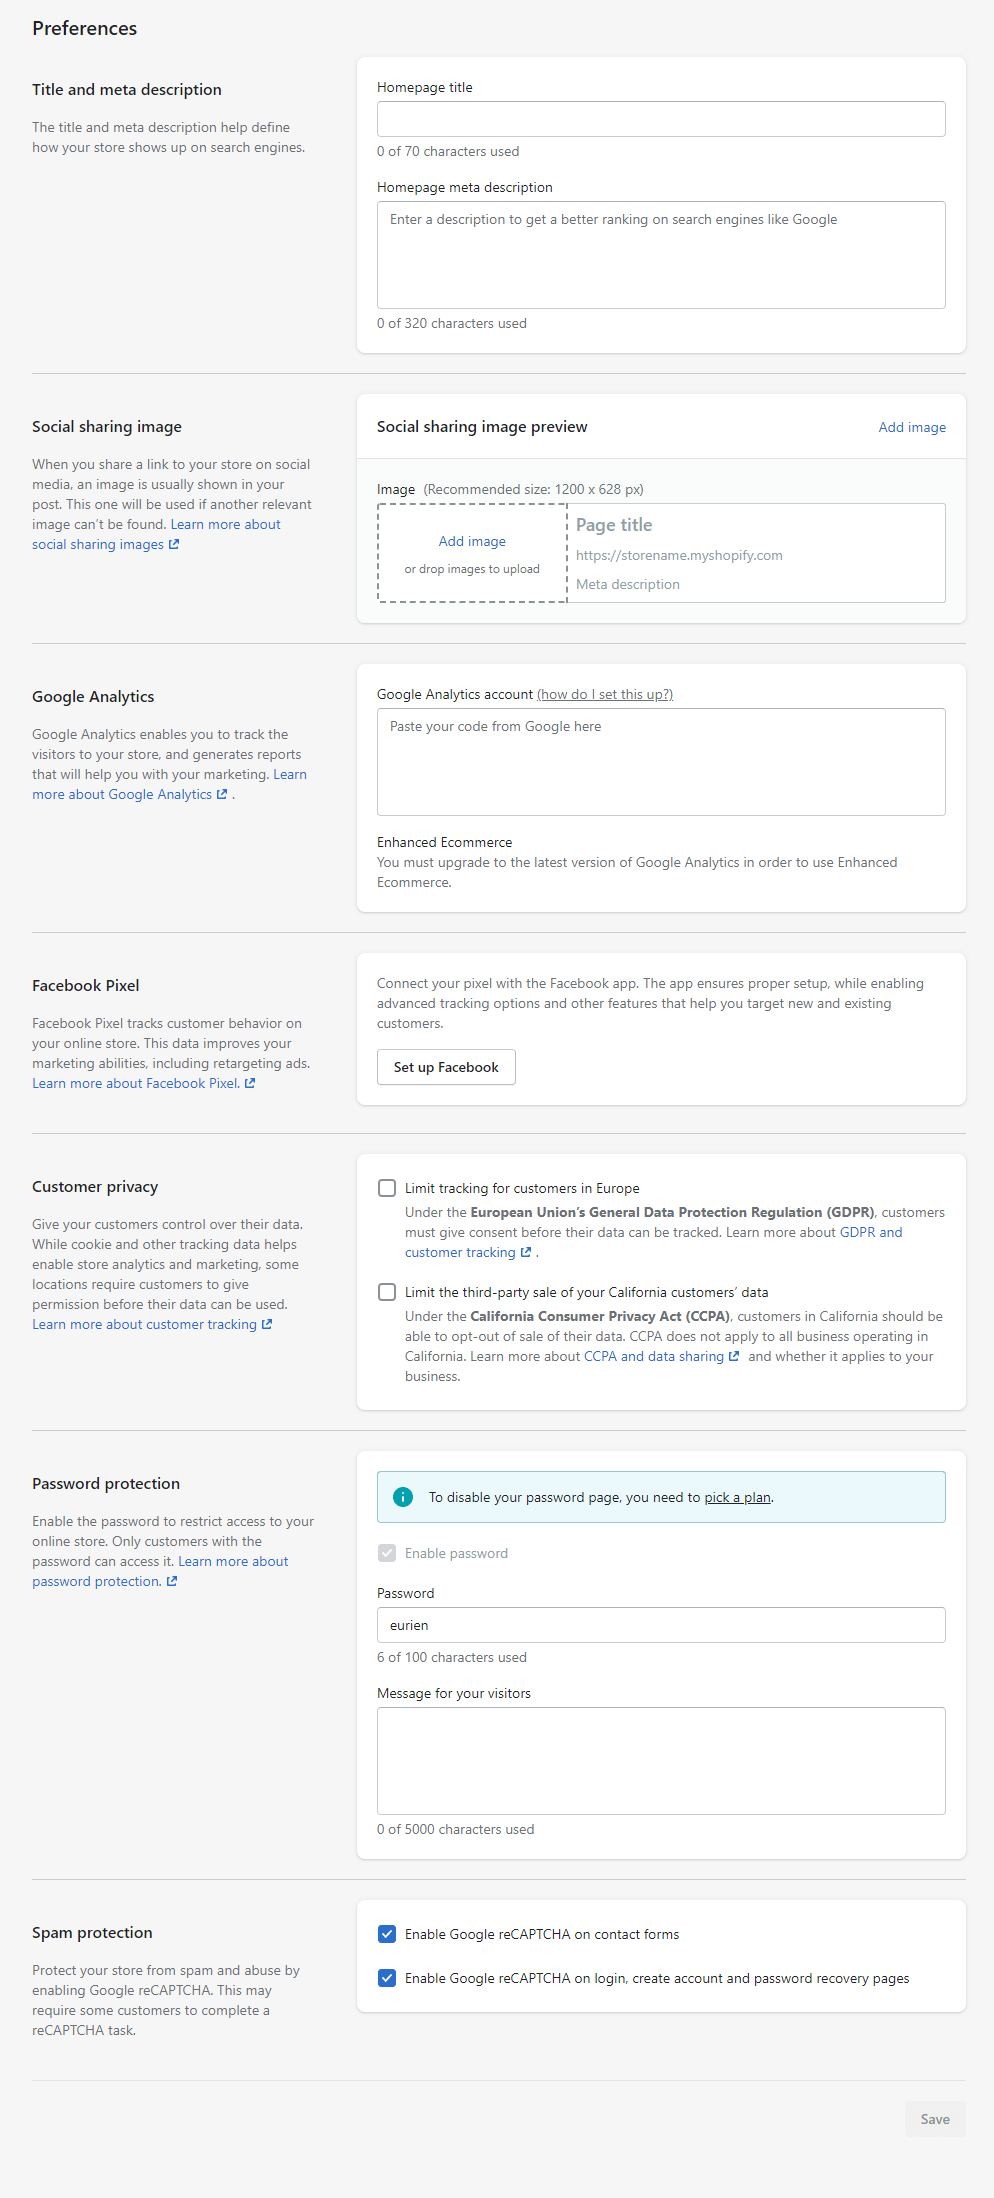 The Shopify preferences page, showing users where they can disable their password and complete the Shopify tutorial.